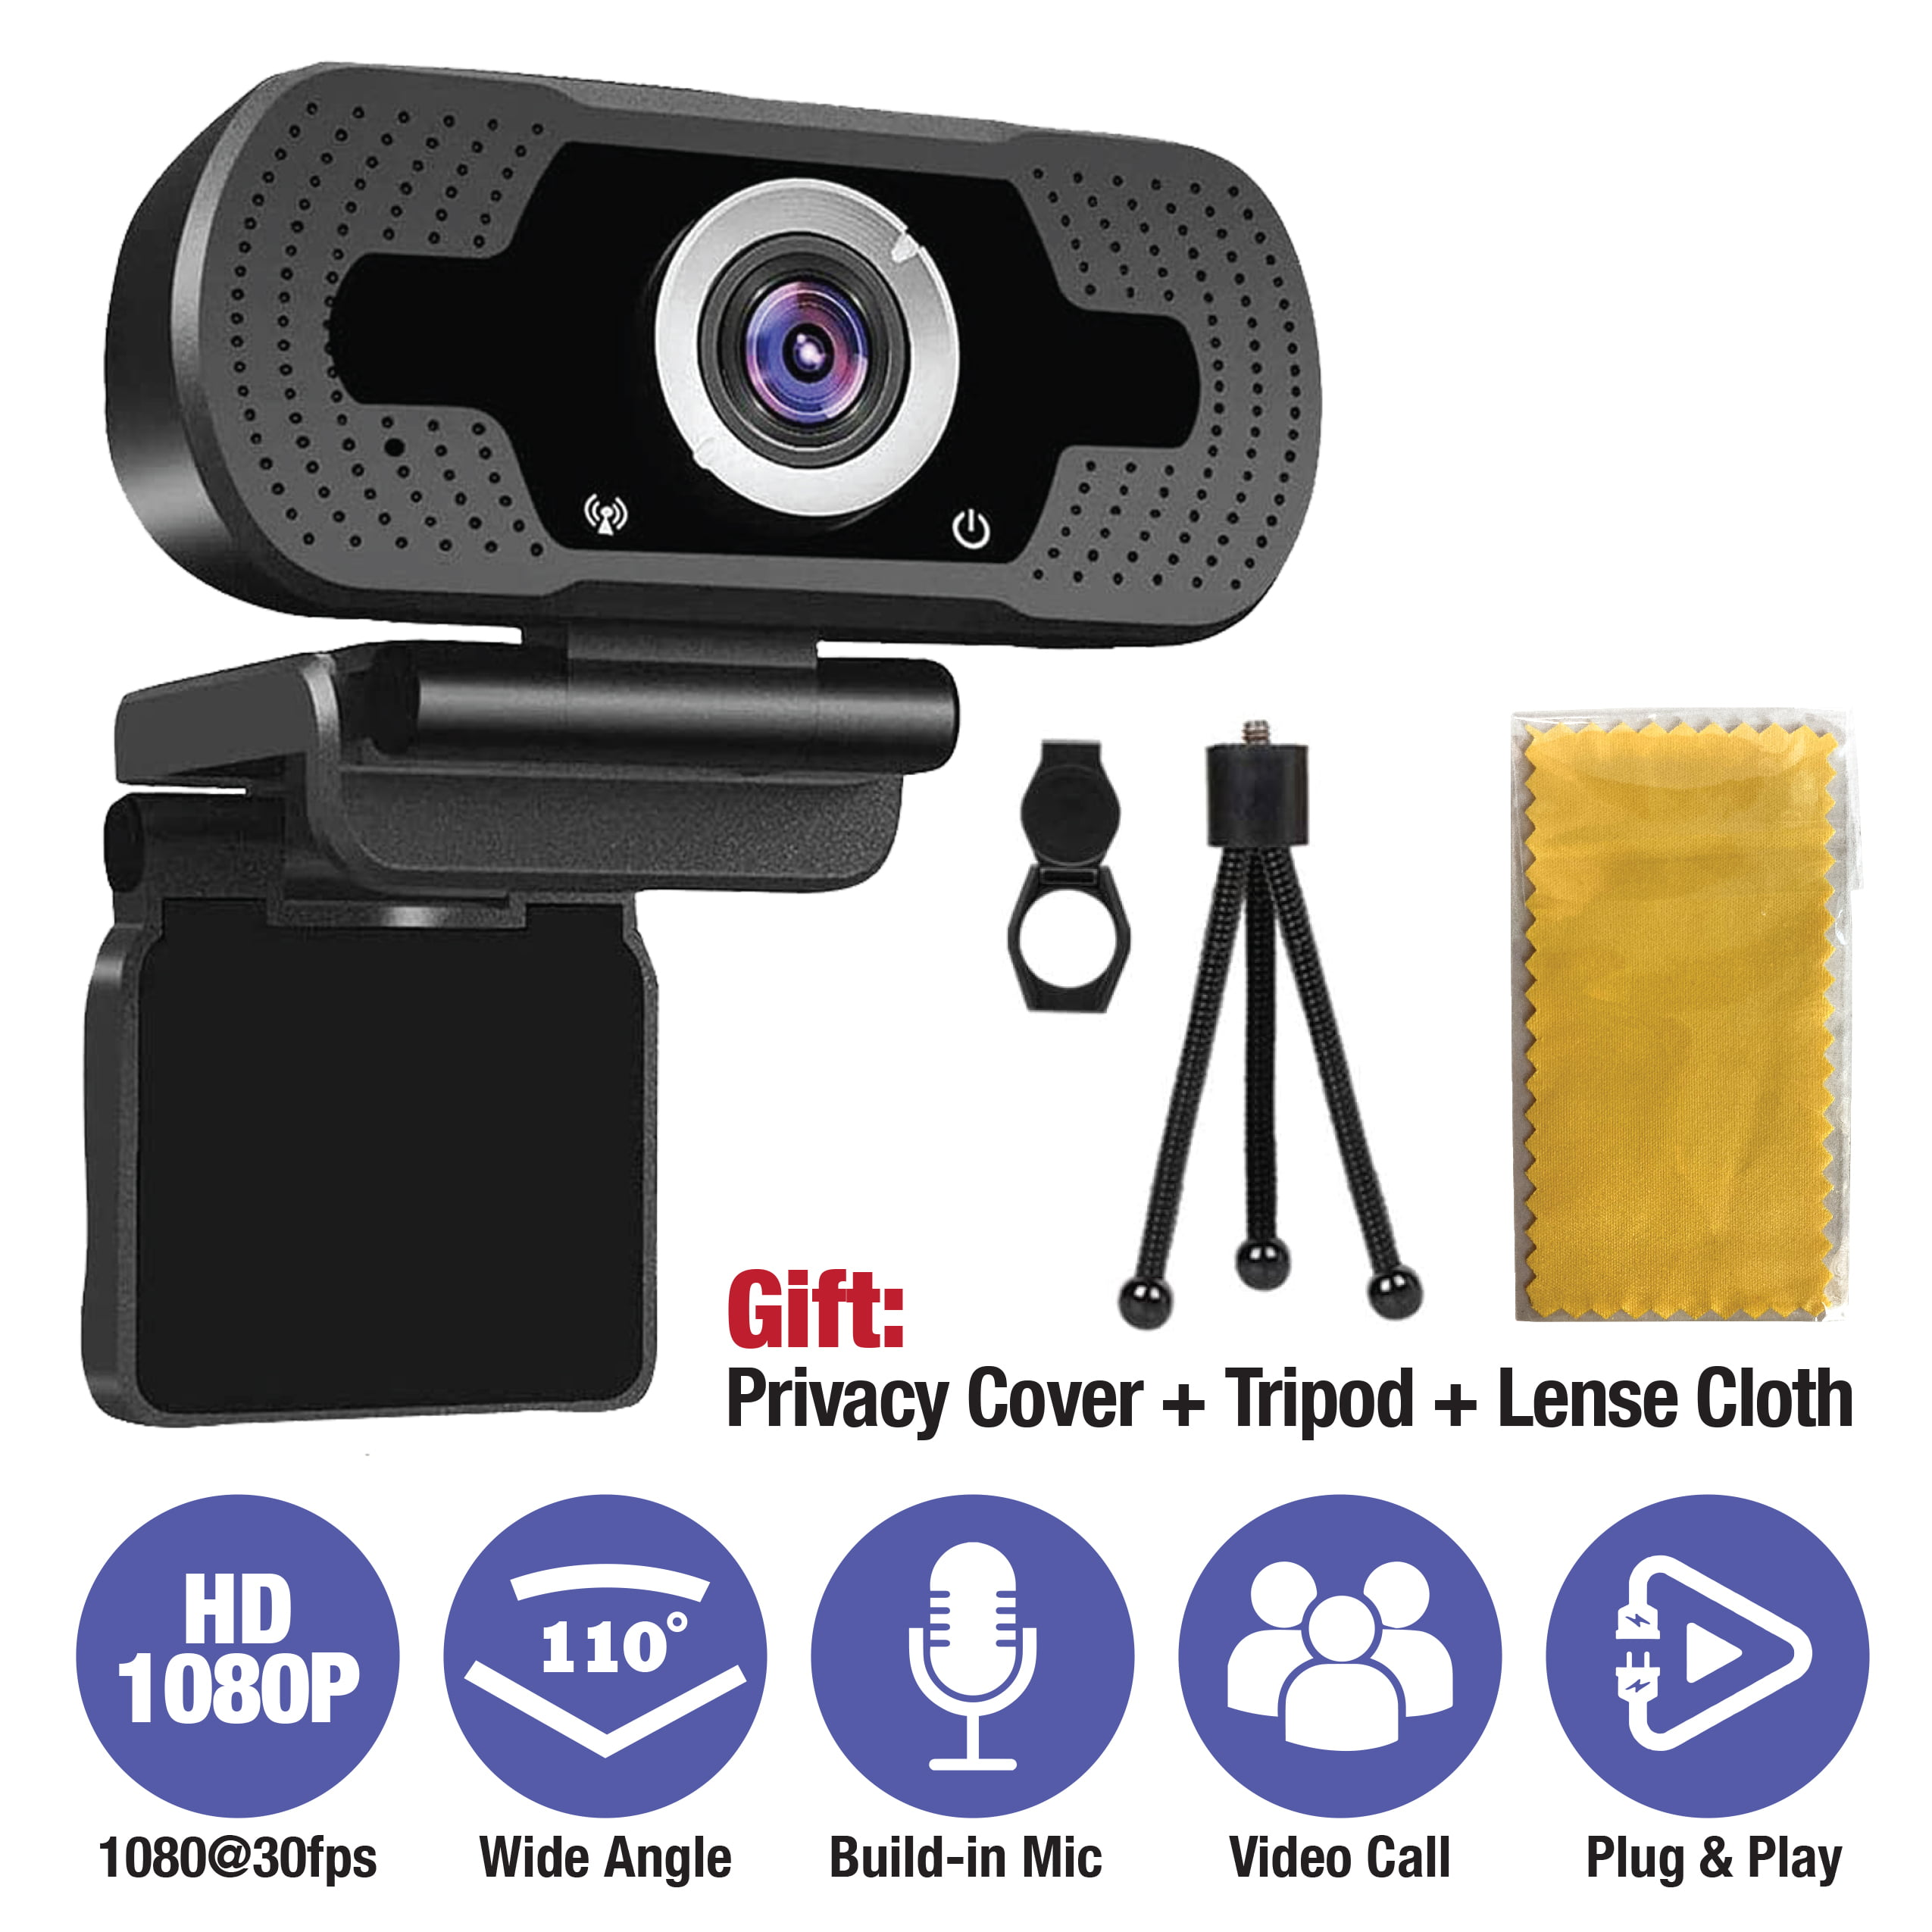 EverGrow 2020 1080P Webcam with Microphone & Privacy Cover and Tripod, 110-degree Wide Angle Widescreen USB HD Camera, Plug and Play, Laptop Computer Web Cam for Zoom YouTube Skype FaceTime( CAM-WEB-2MP)